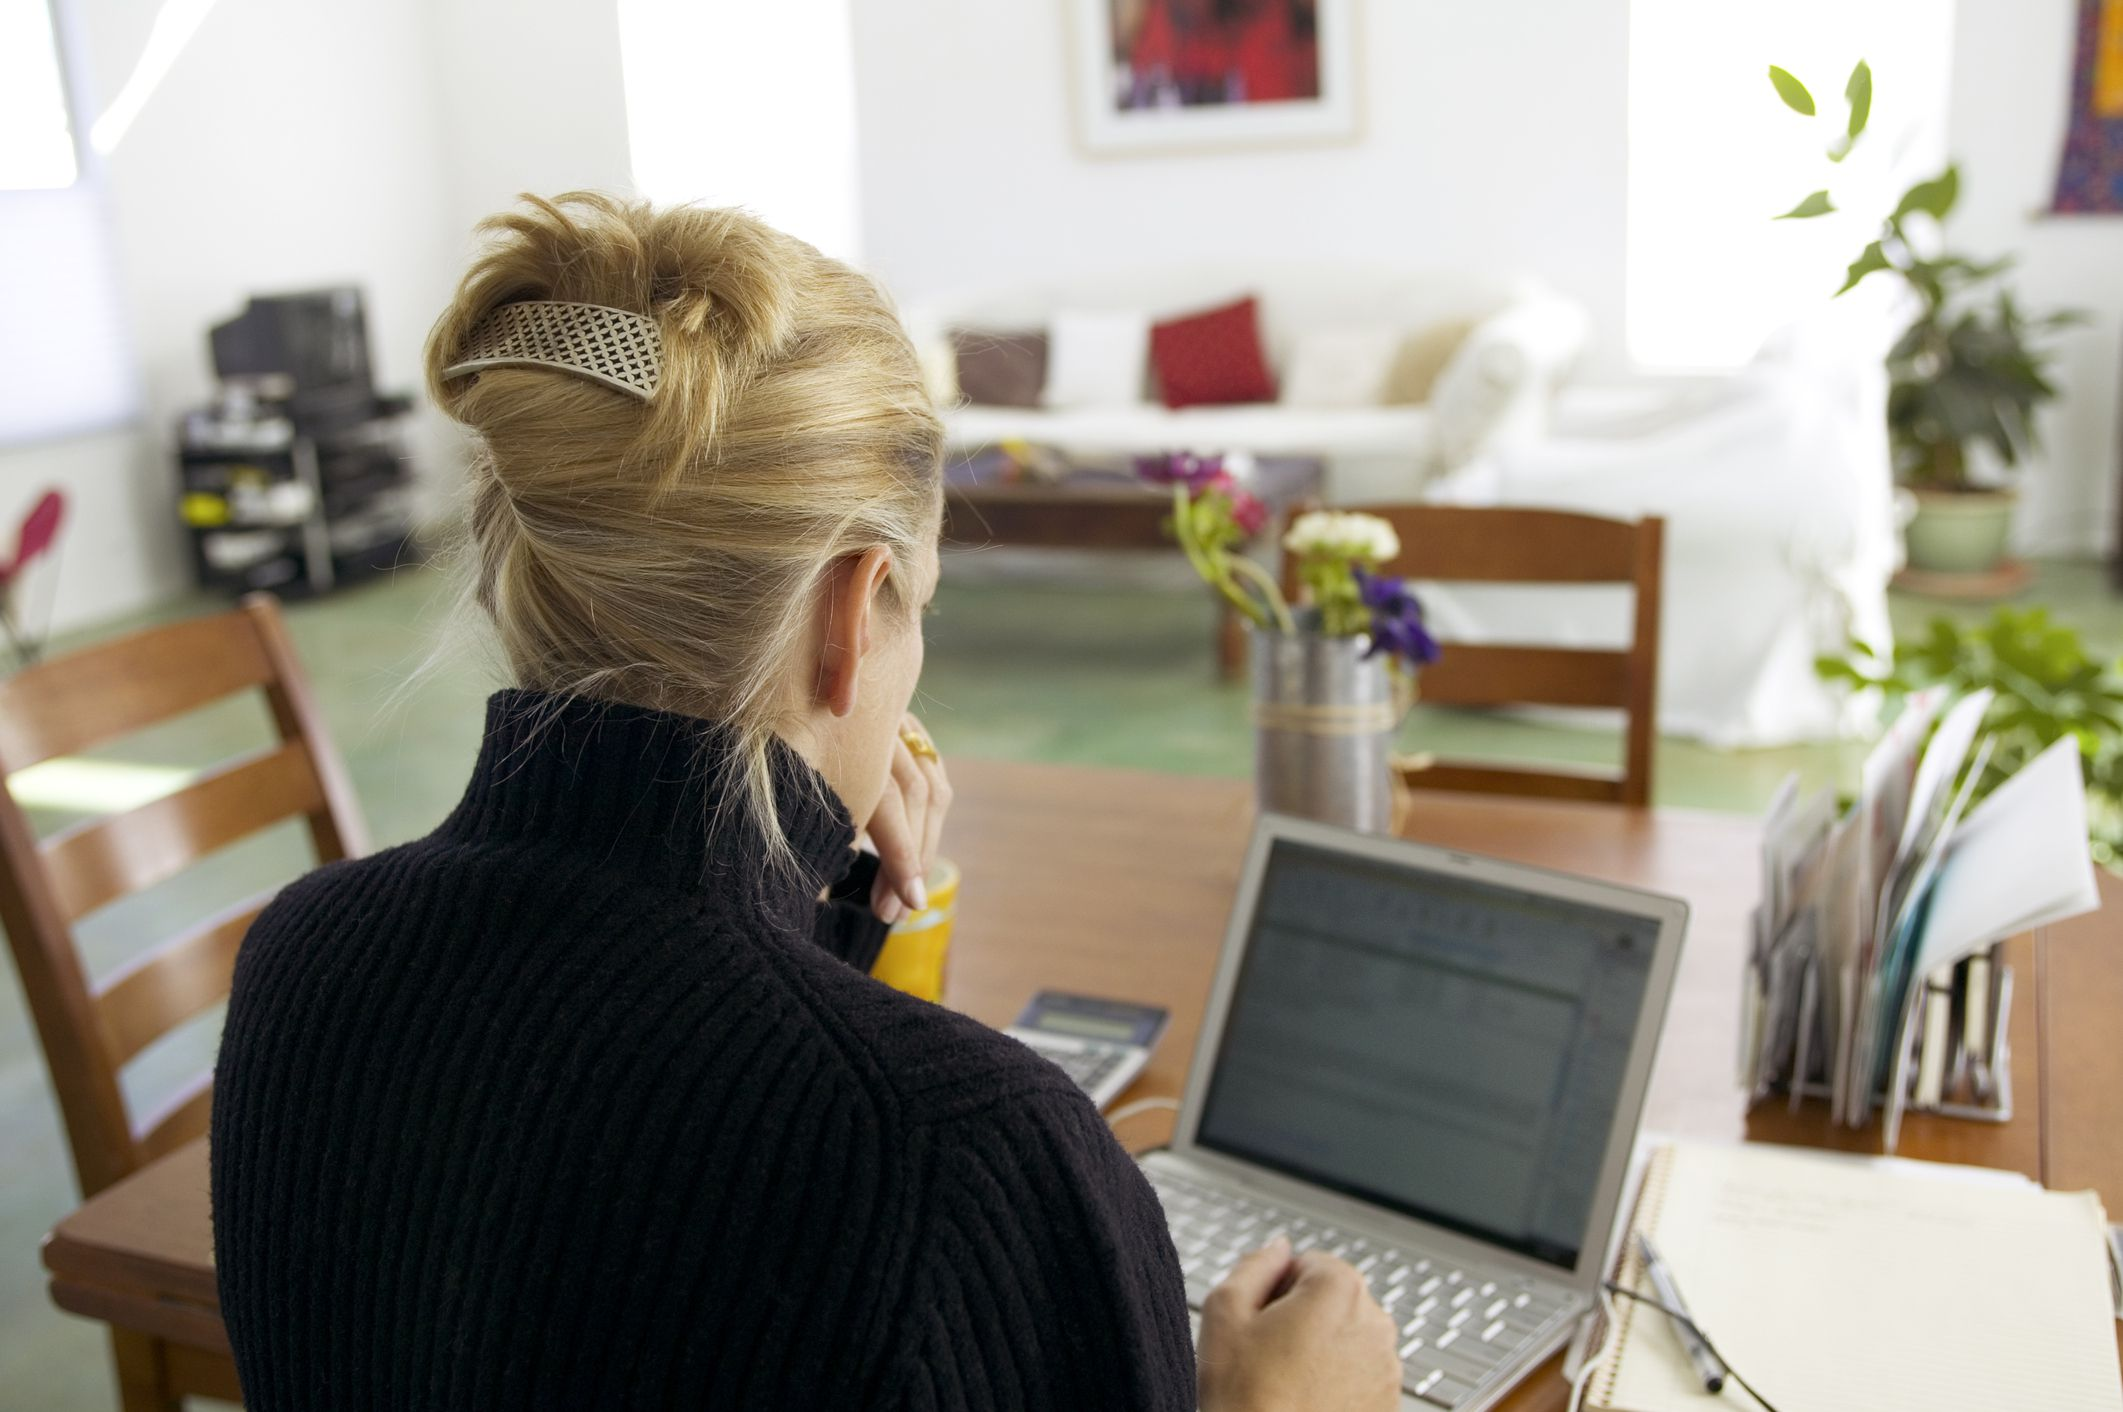 Email etiquette tips for job seekers 7 essentials for effective email communication ccuart Images